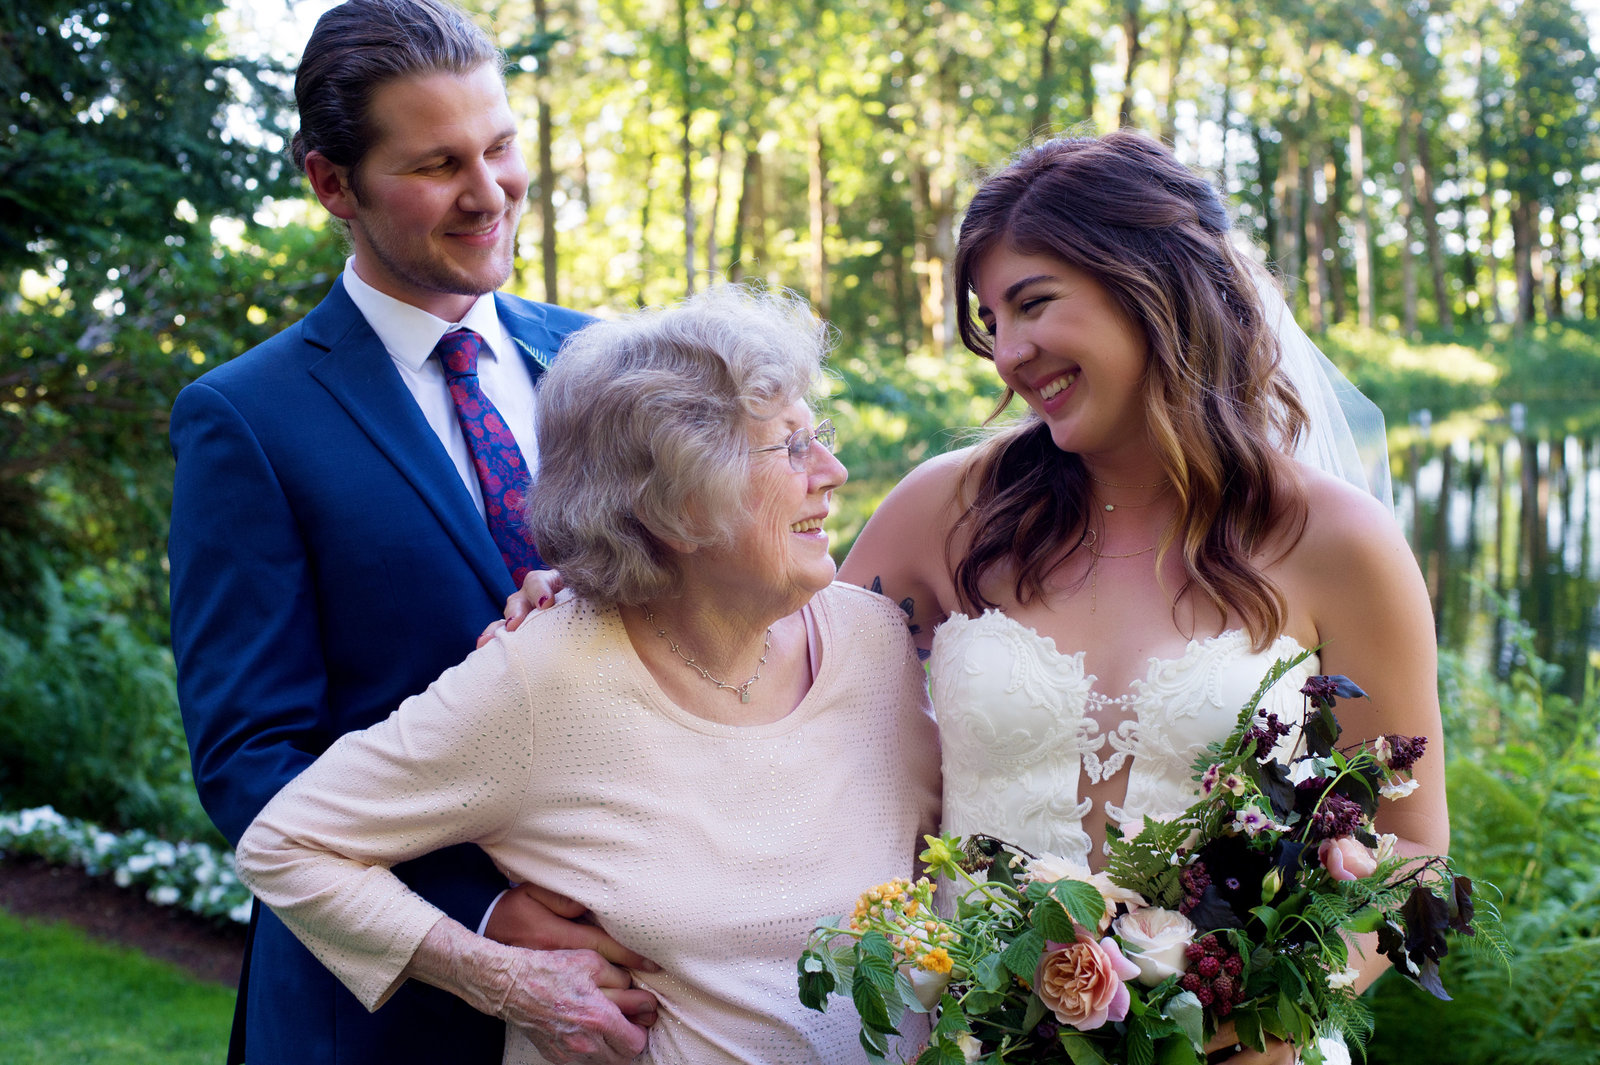 grandma looks up at bride on wedding day